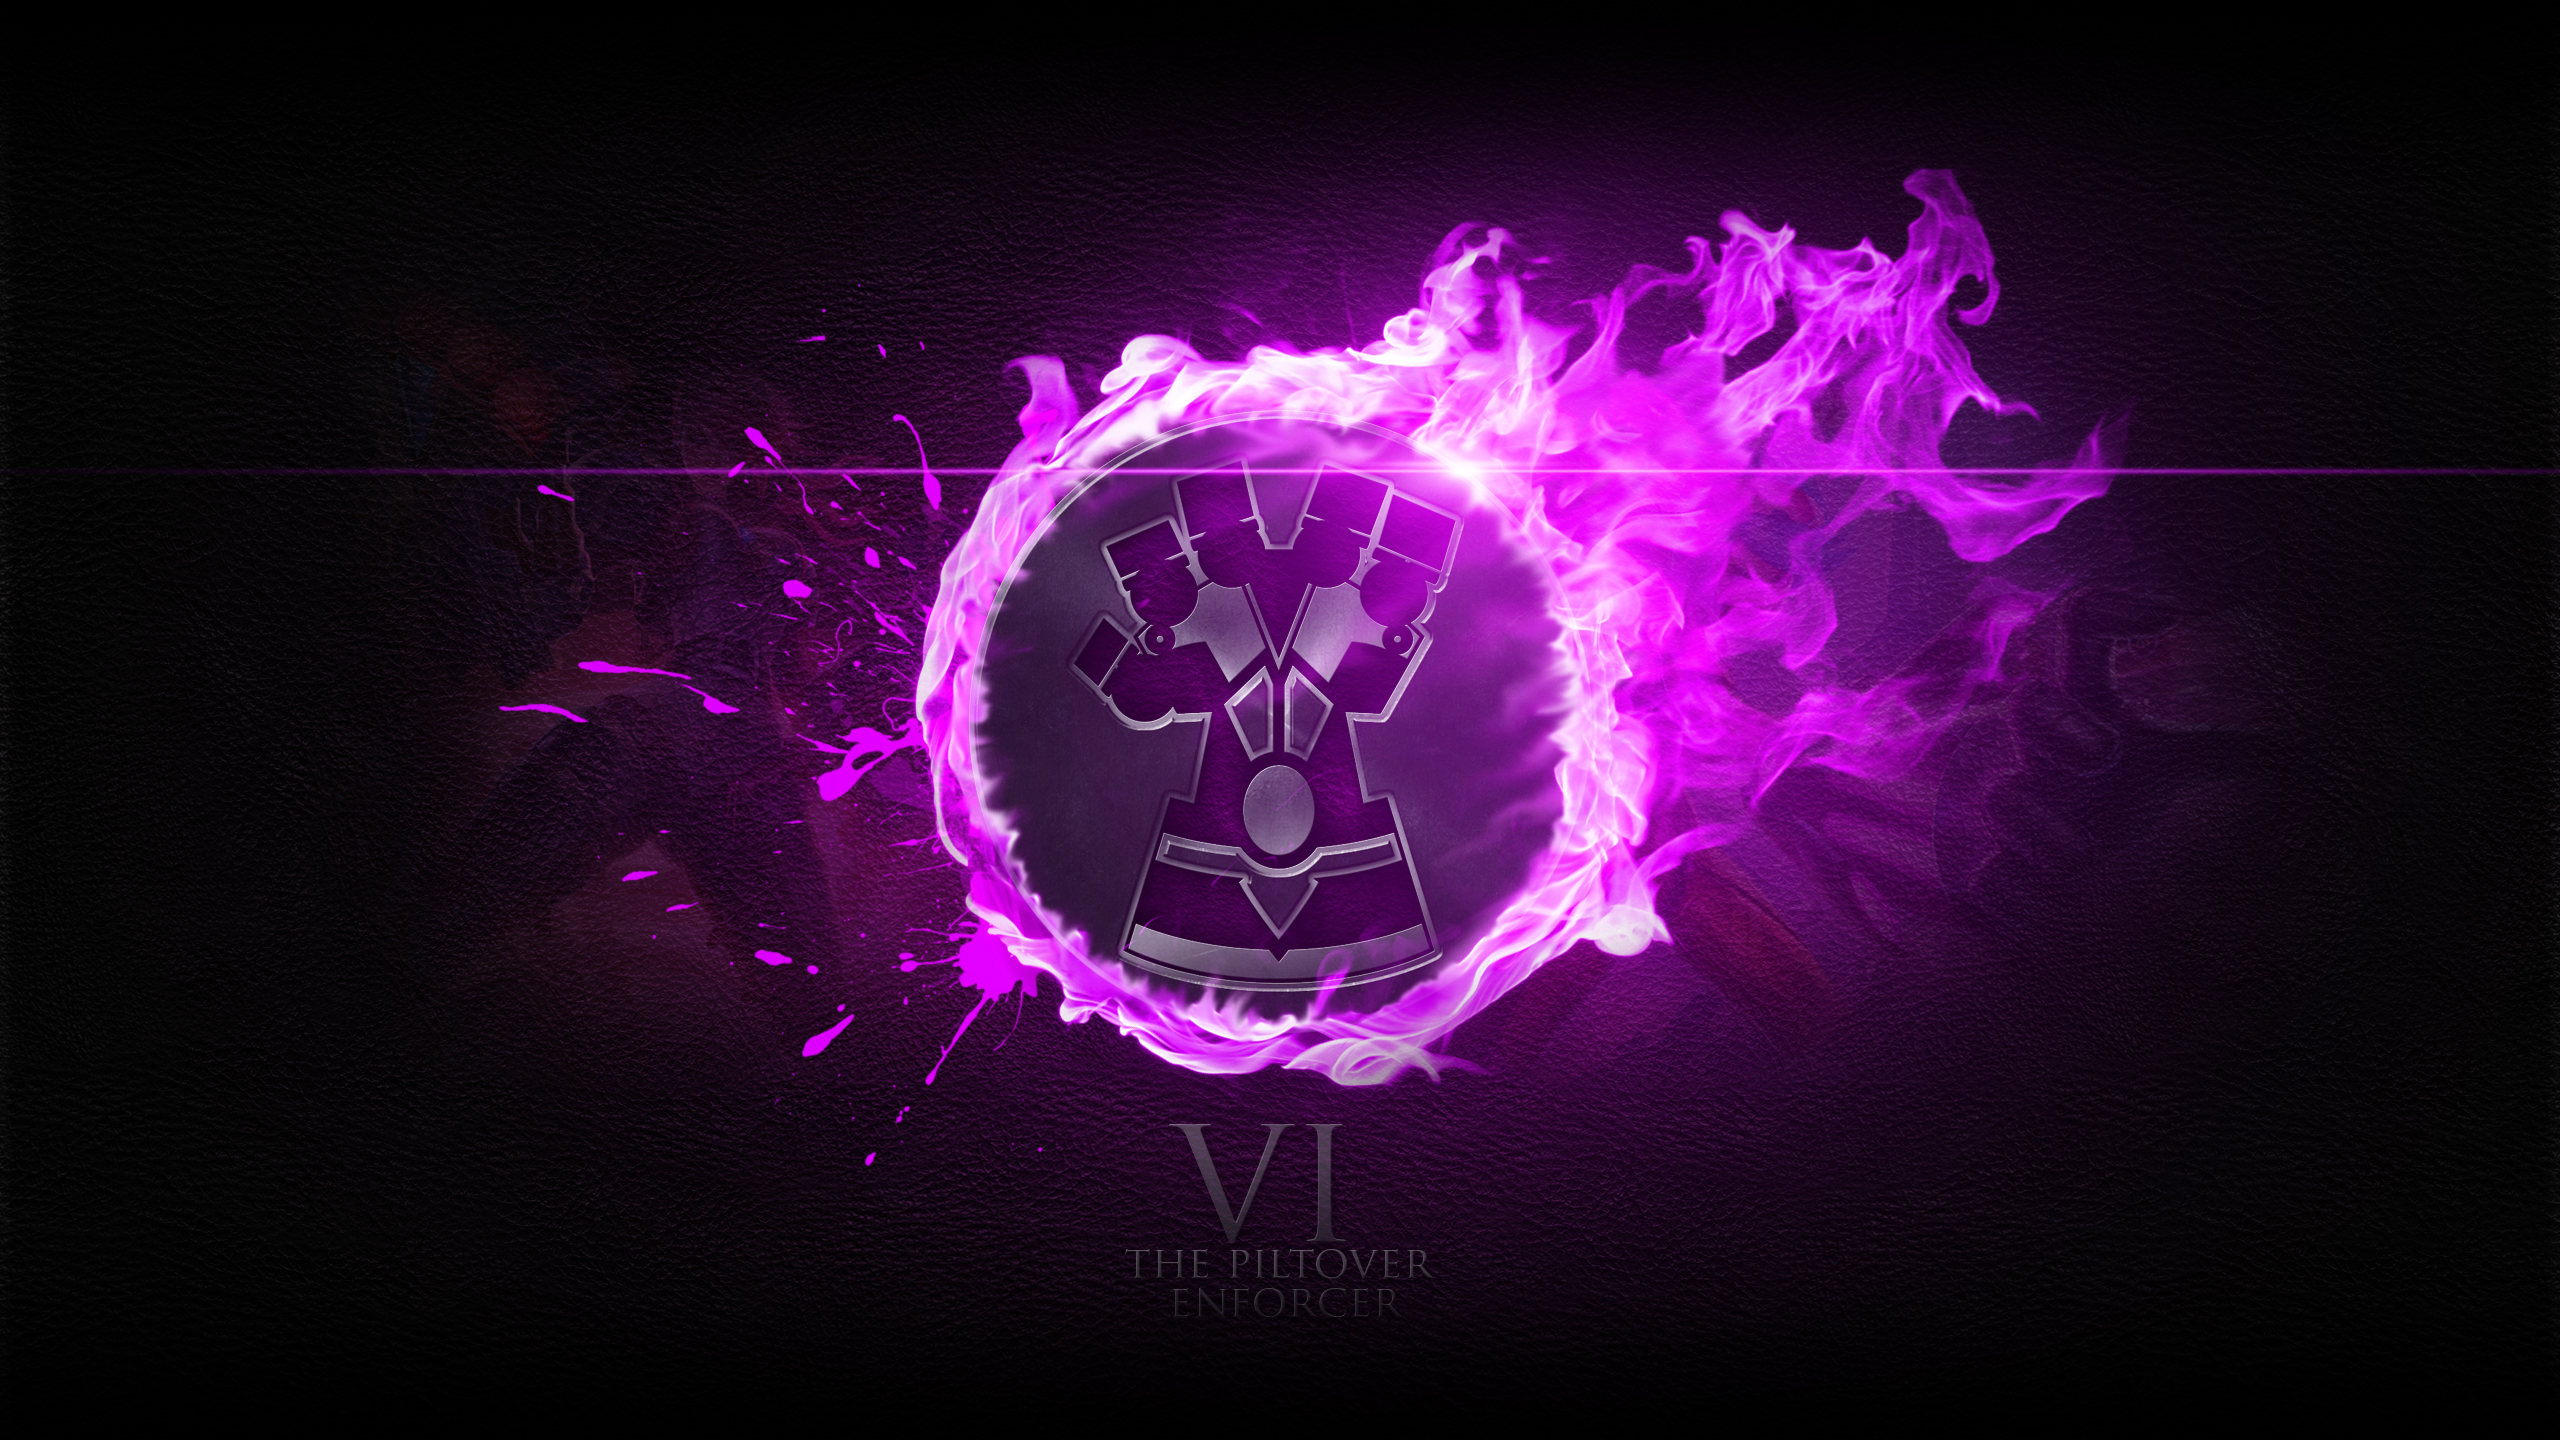 Vi League Of Legends Wallpapers Hd 1920x1080 League Of Legends